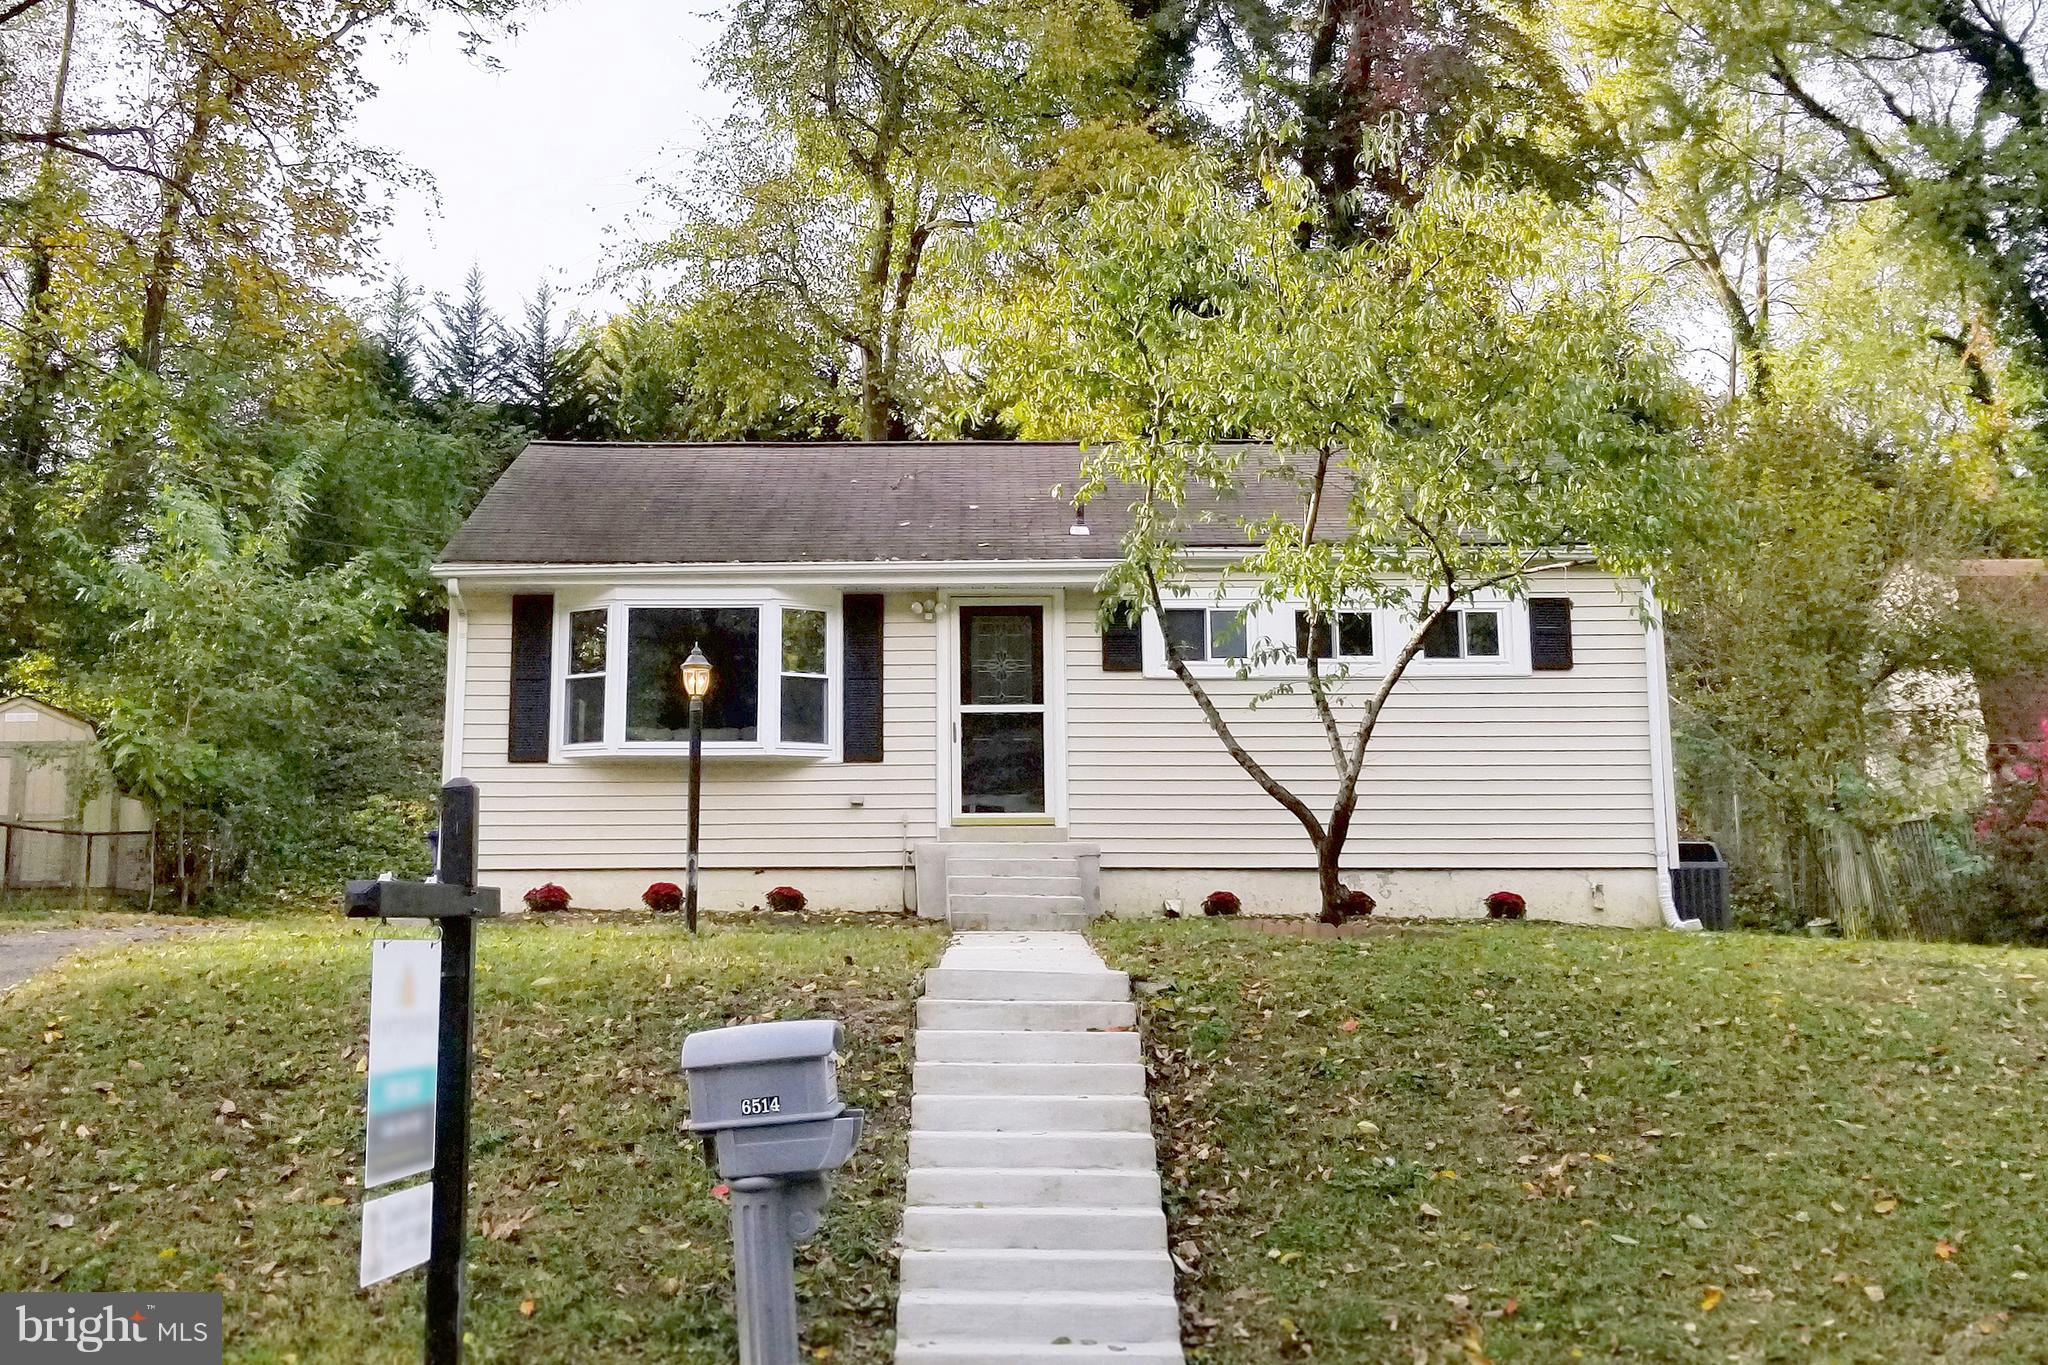 SO MUCH NEW! Renovated and a must see. HVAC, windows, stainless appliances, granite counters, beautiful bathrooms, new carpet. Storage galore! Walk-in pantry. GREAT location. You will love to call this home.